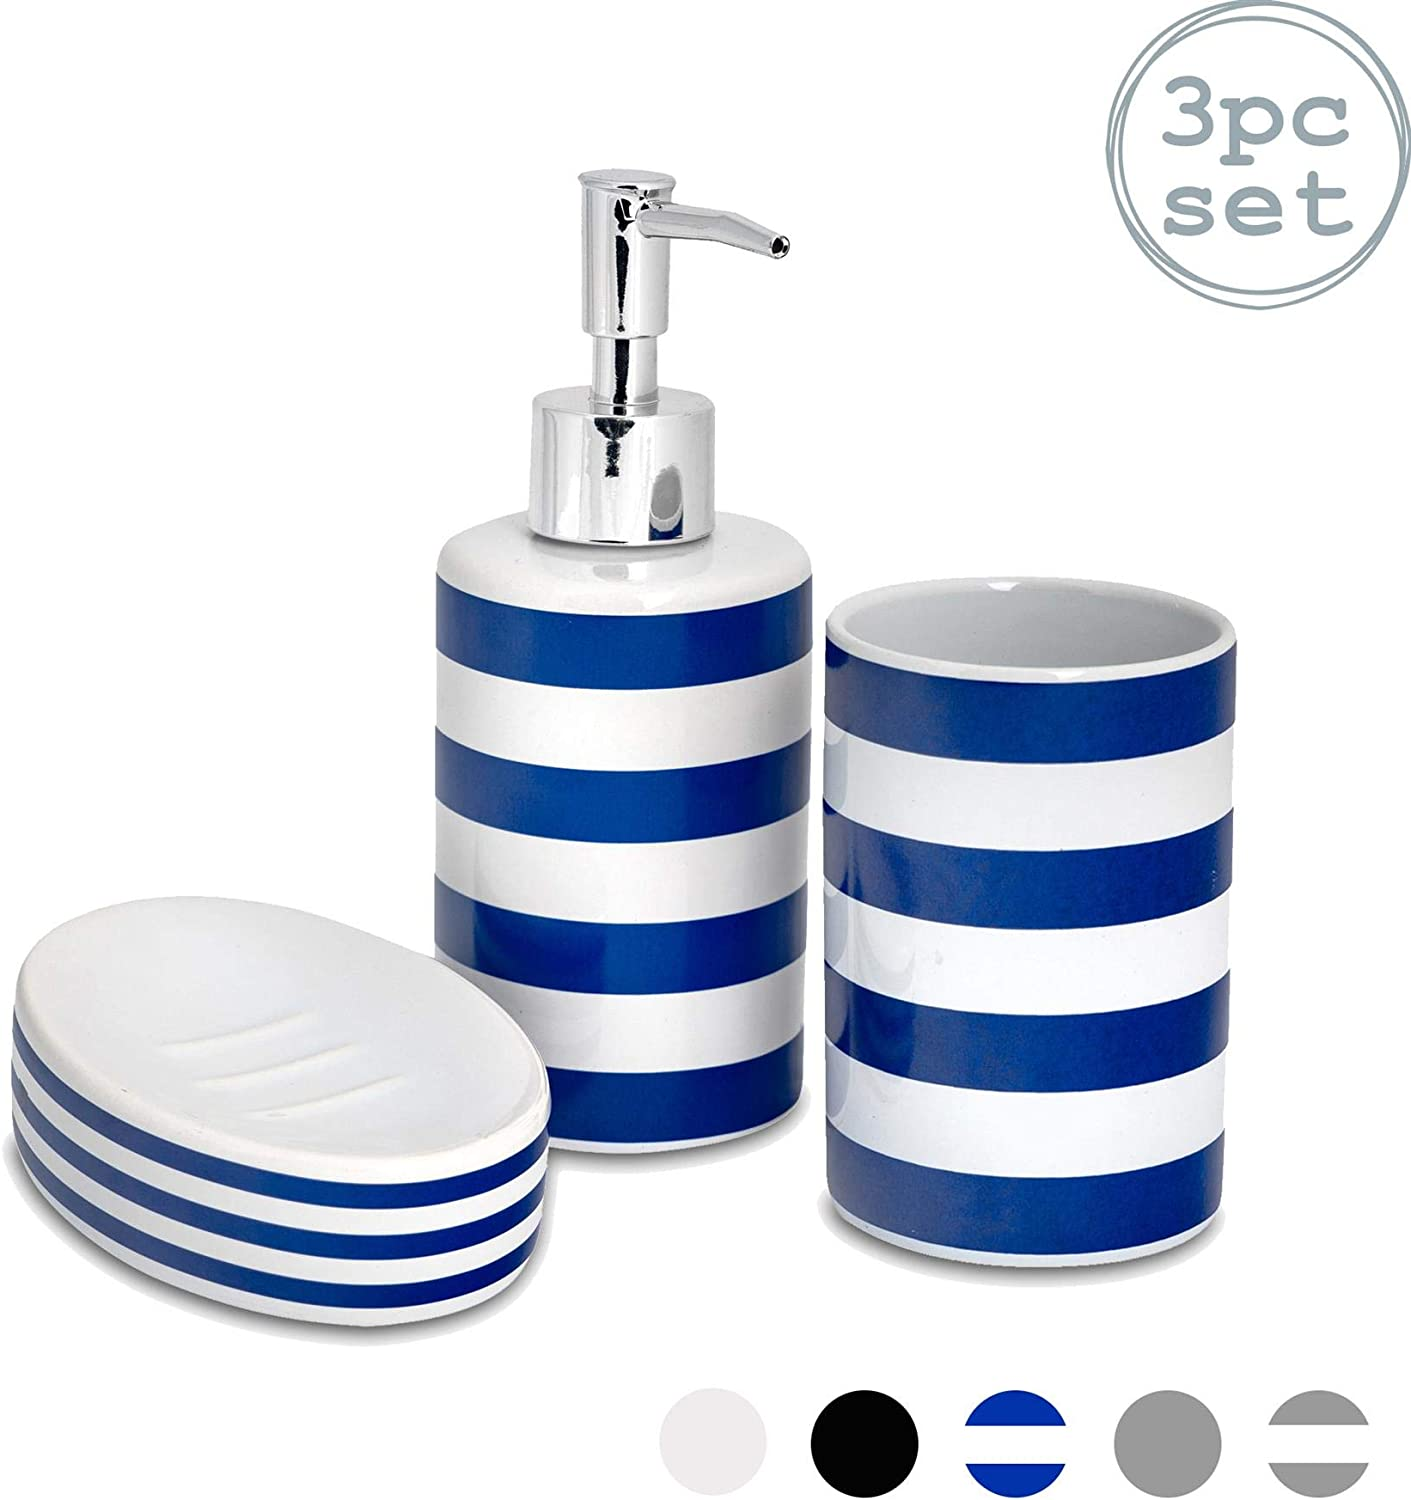 White Glossy Sink Set…Ceramic Soap Dish...Cup /& Toothbrush holder   New Stock